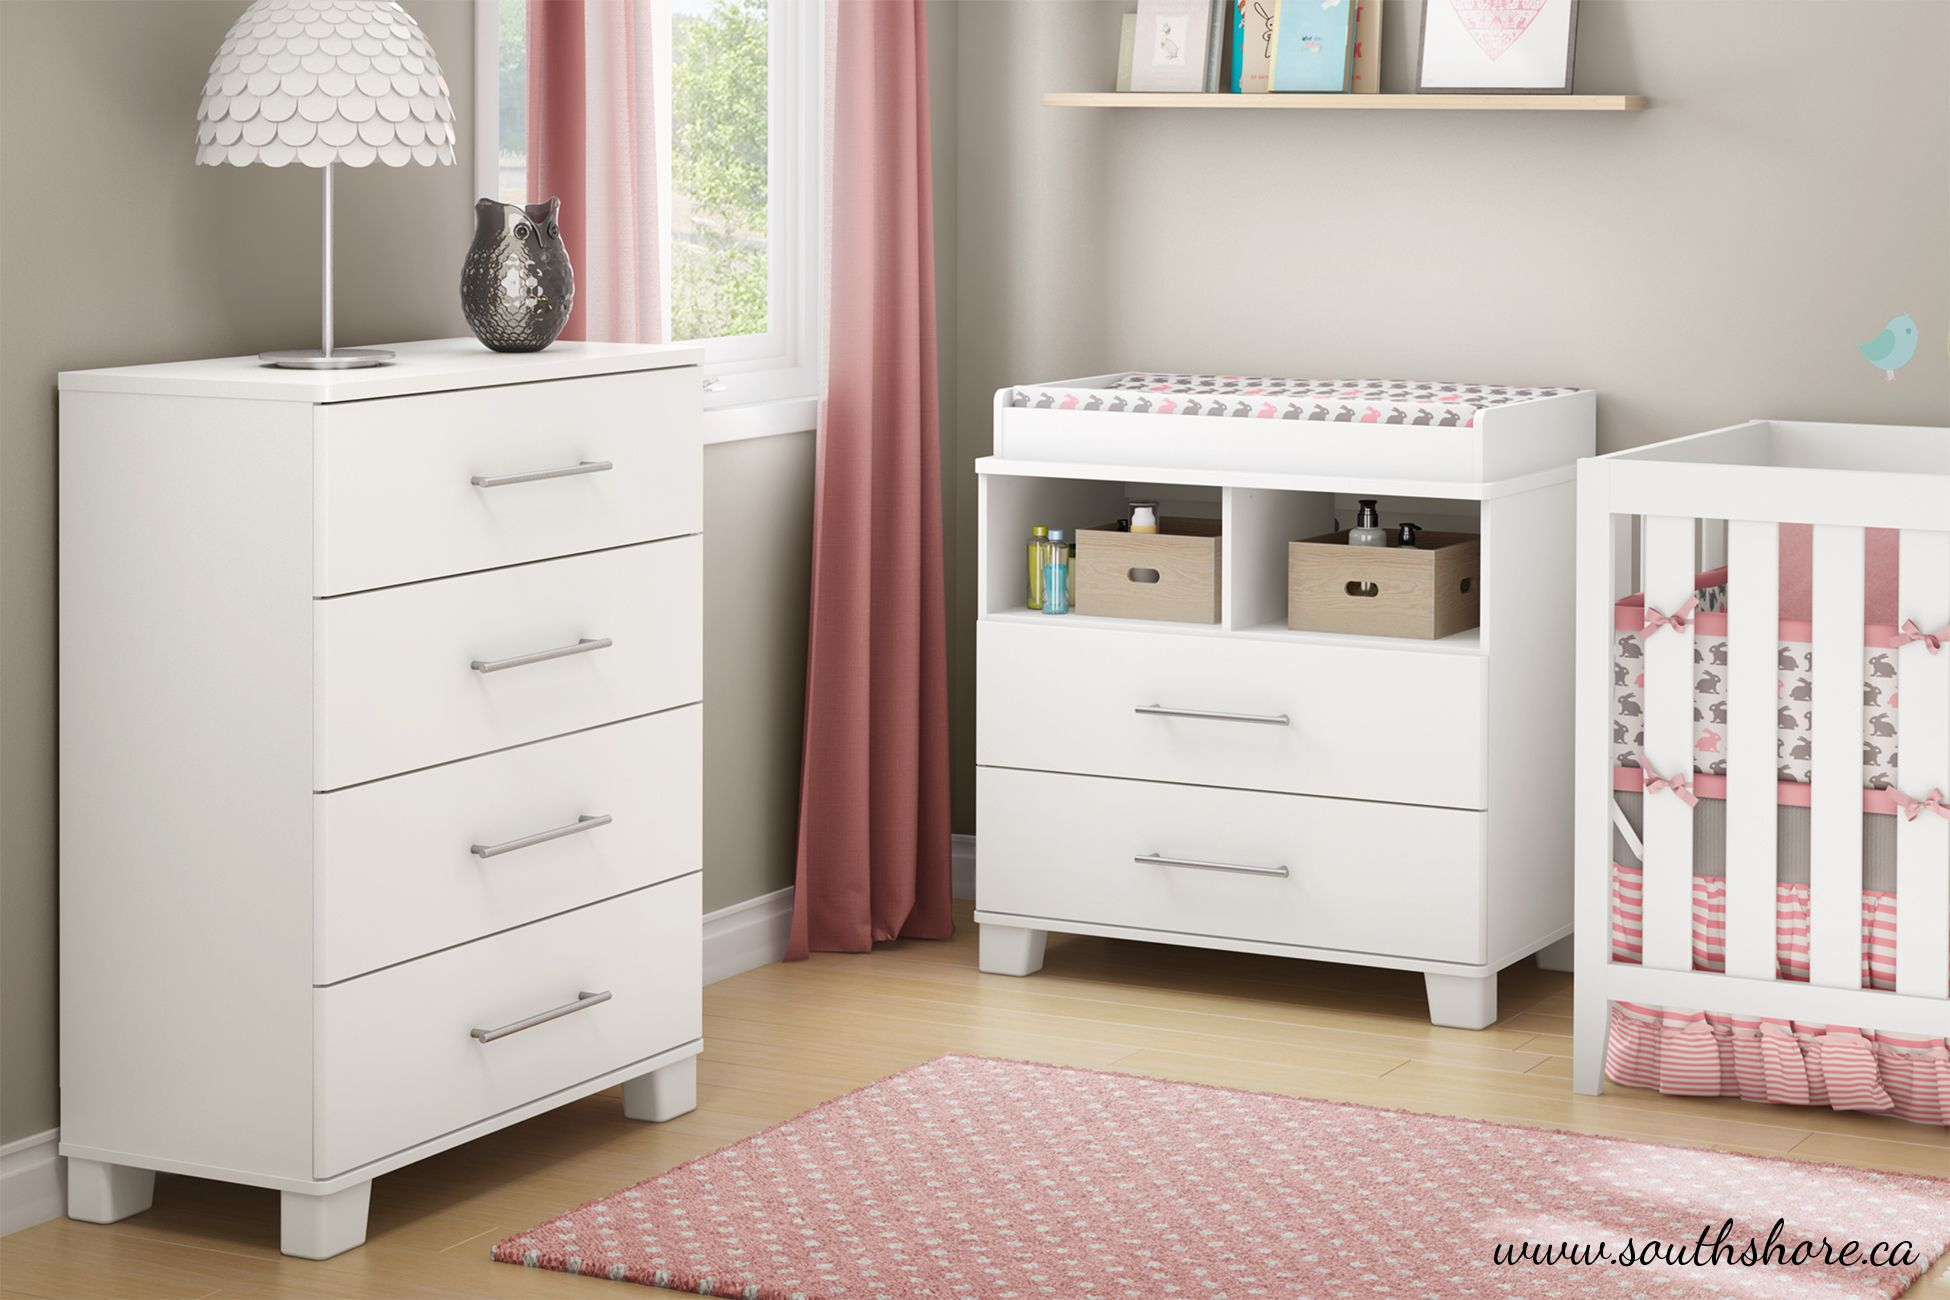 Because the nursery can also look modern and stylized